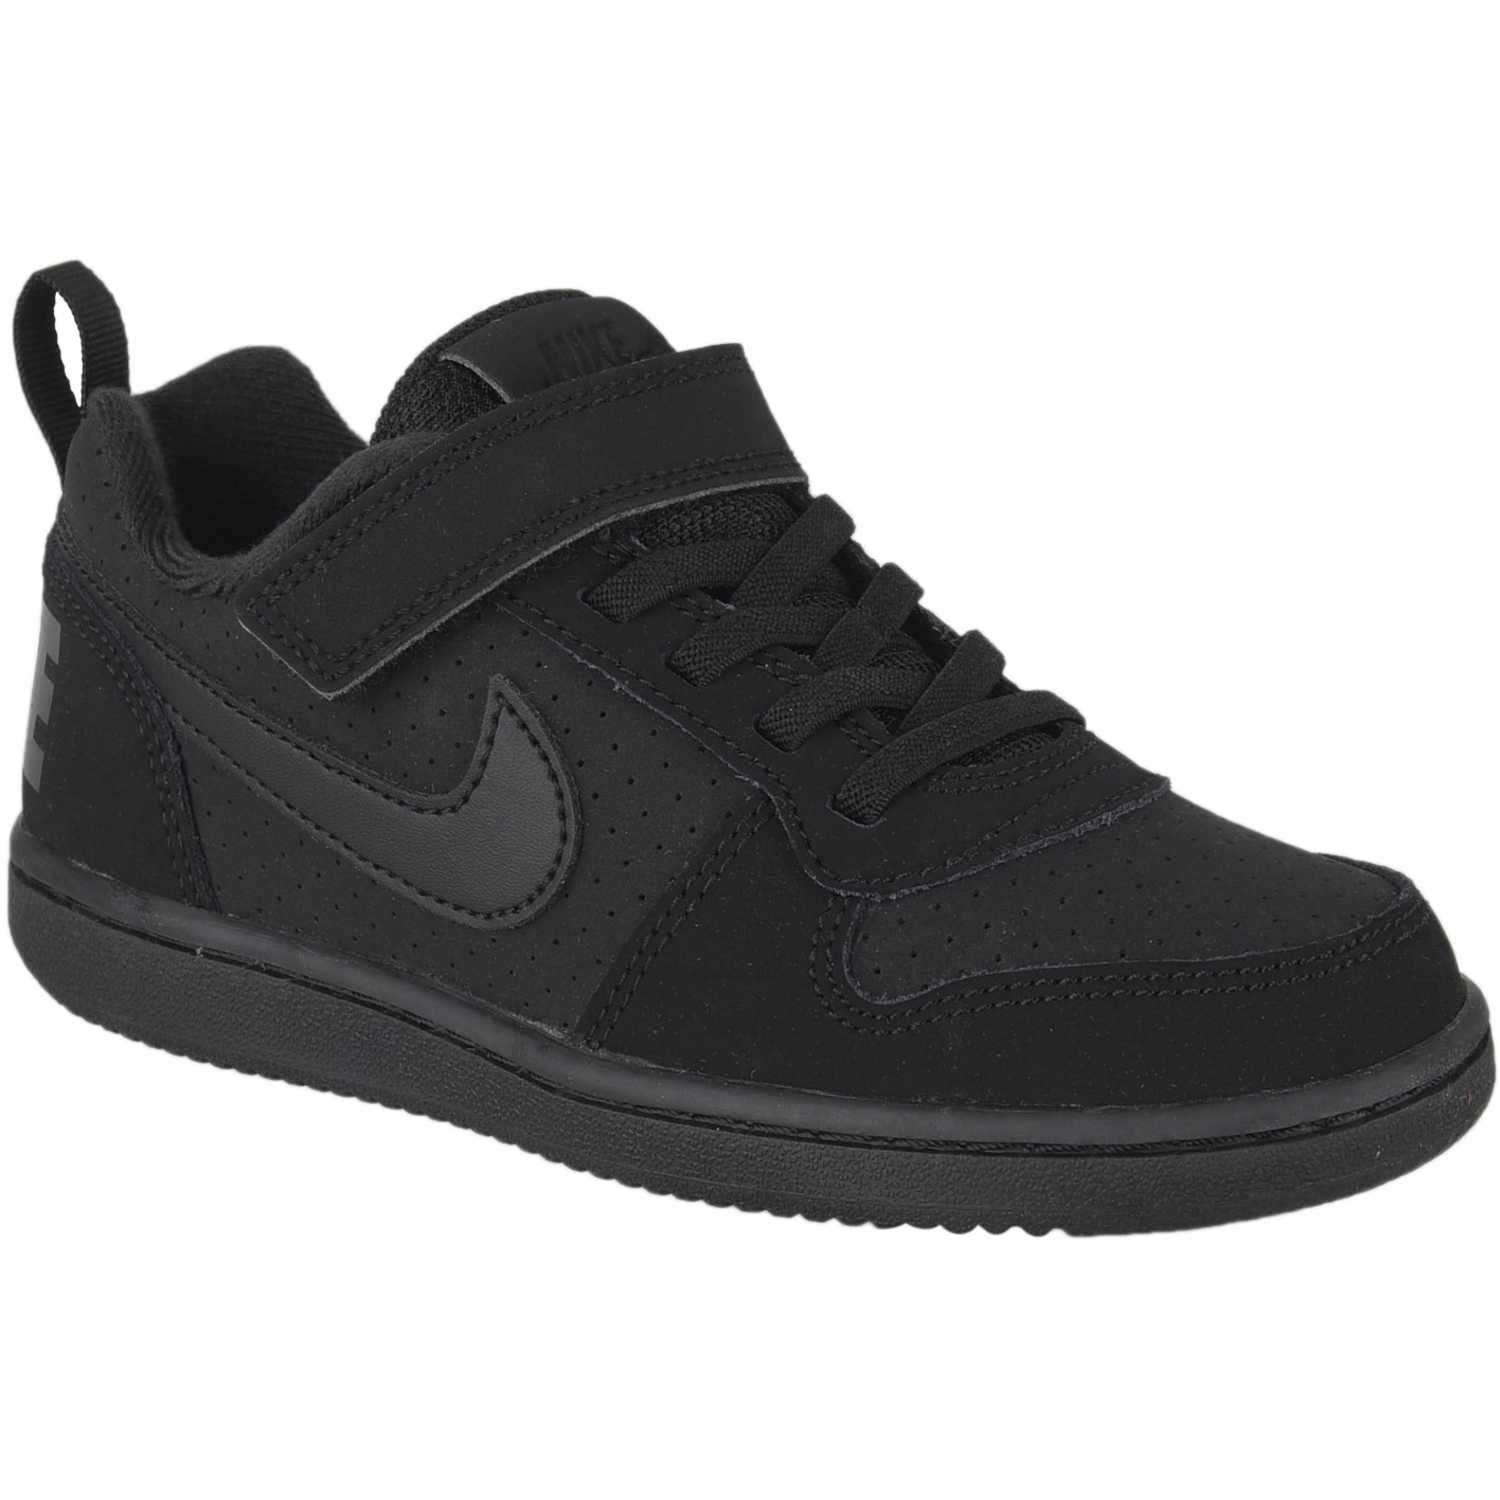 Zapatilla de Niño Nike Negro / negro nike court borough low bpv